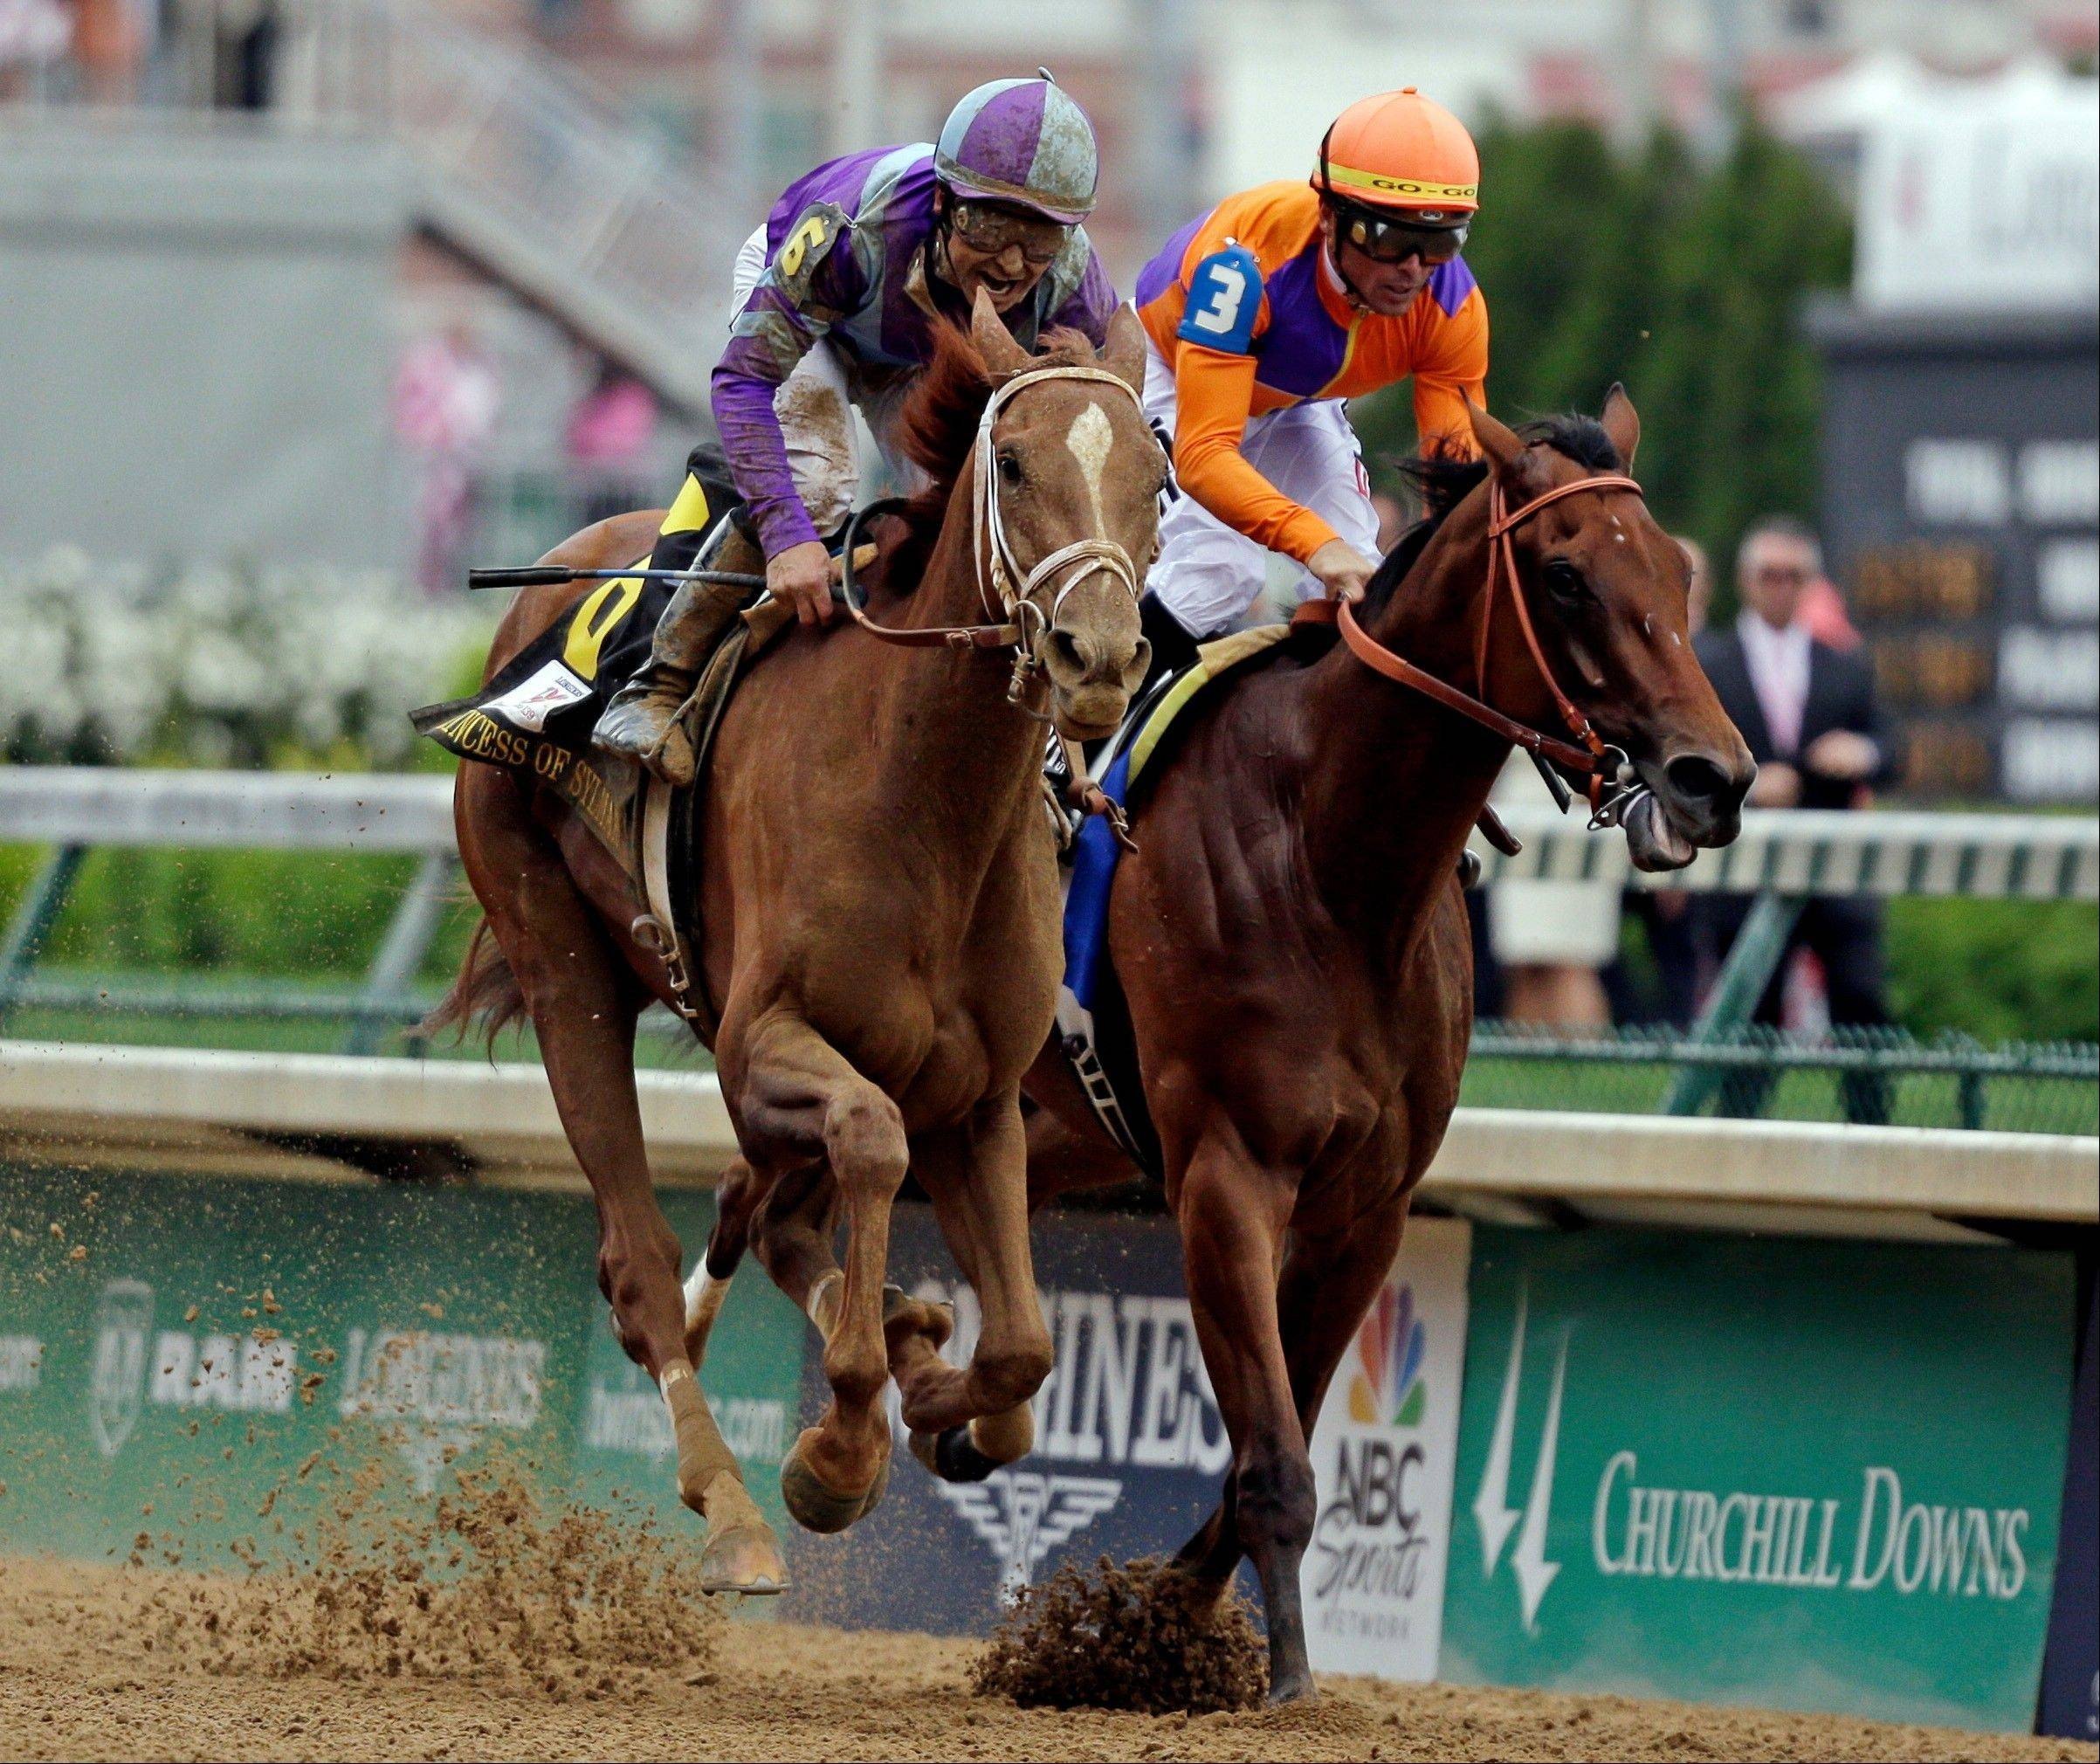 Mike Smith rides Princess of Sylmar to a win over Beholder ridden by Garrett Gomez in the 139th Kentucky Oaks at Churchill Downs Friday, May 3, 2013, in Louisville, Ky.